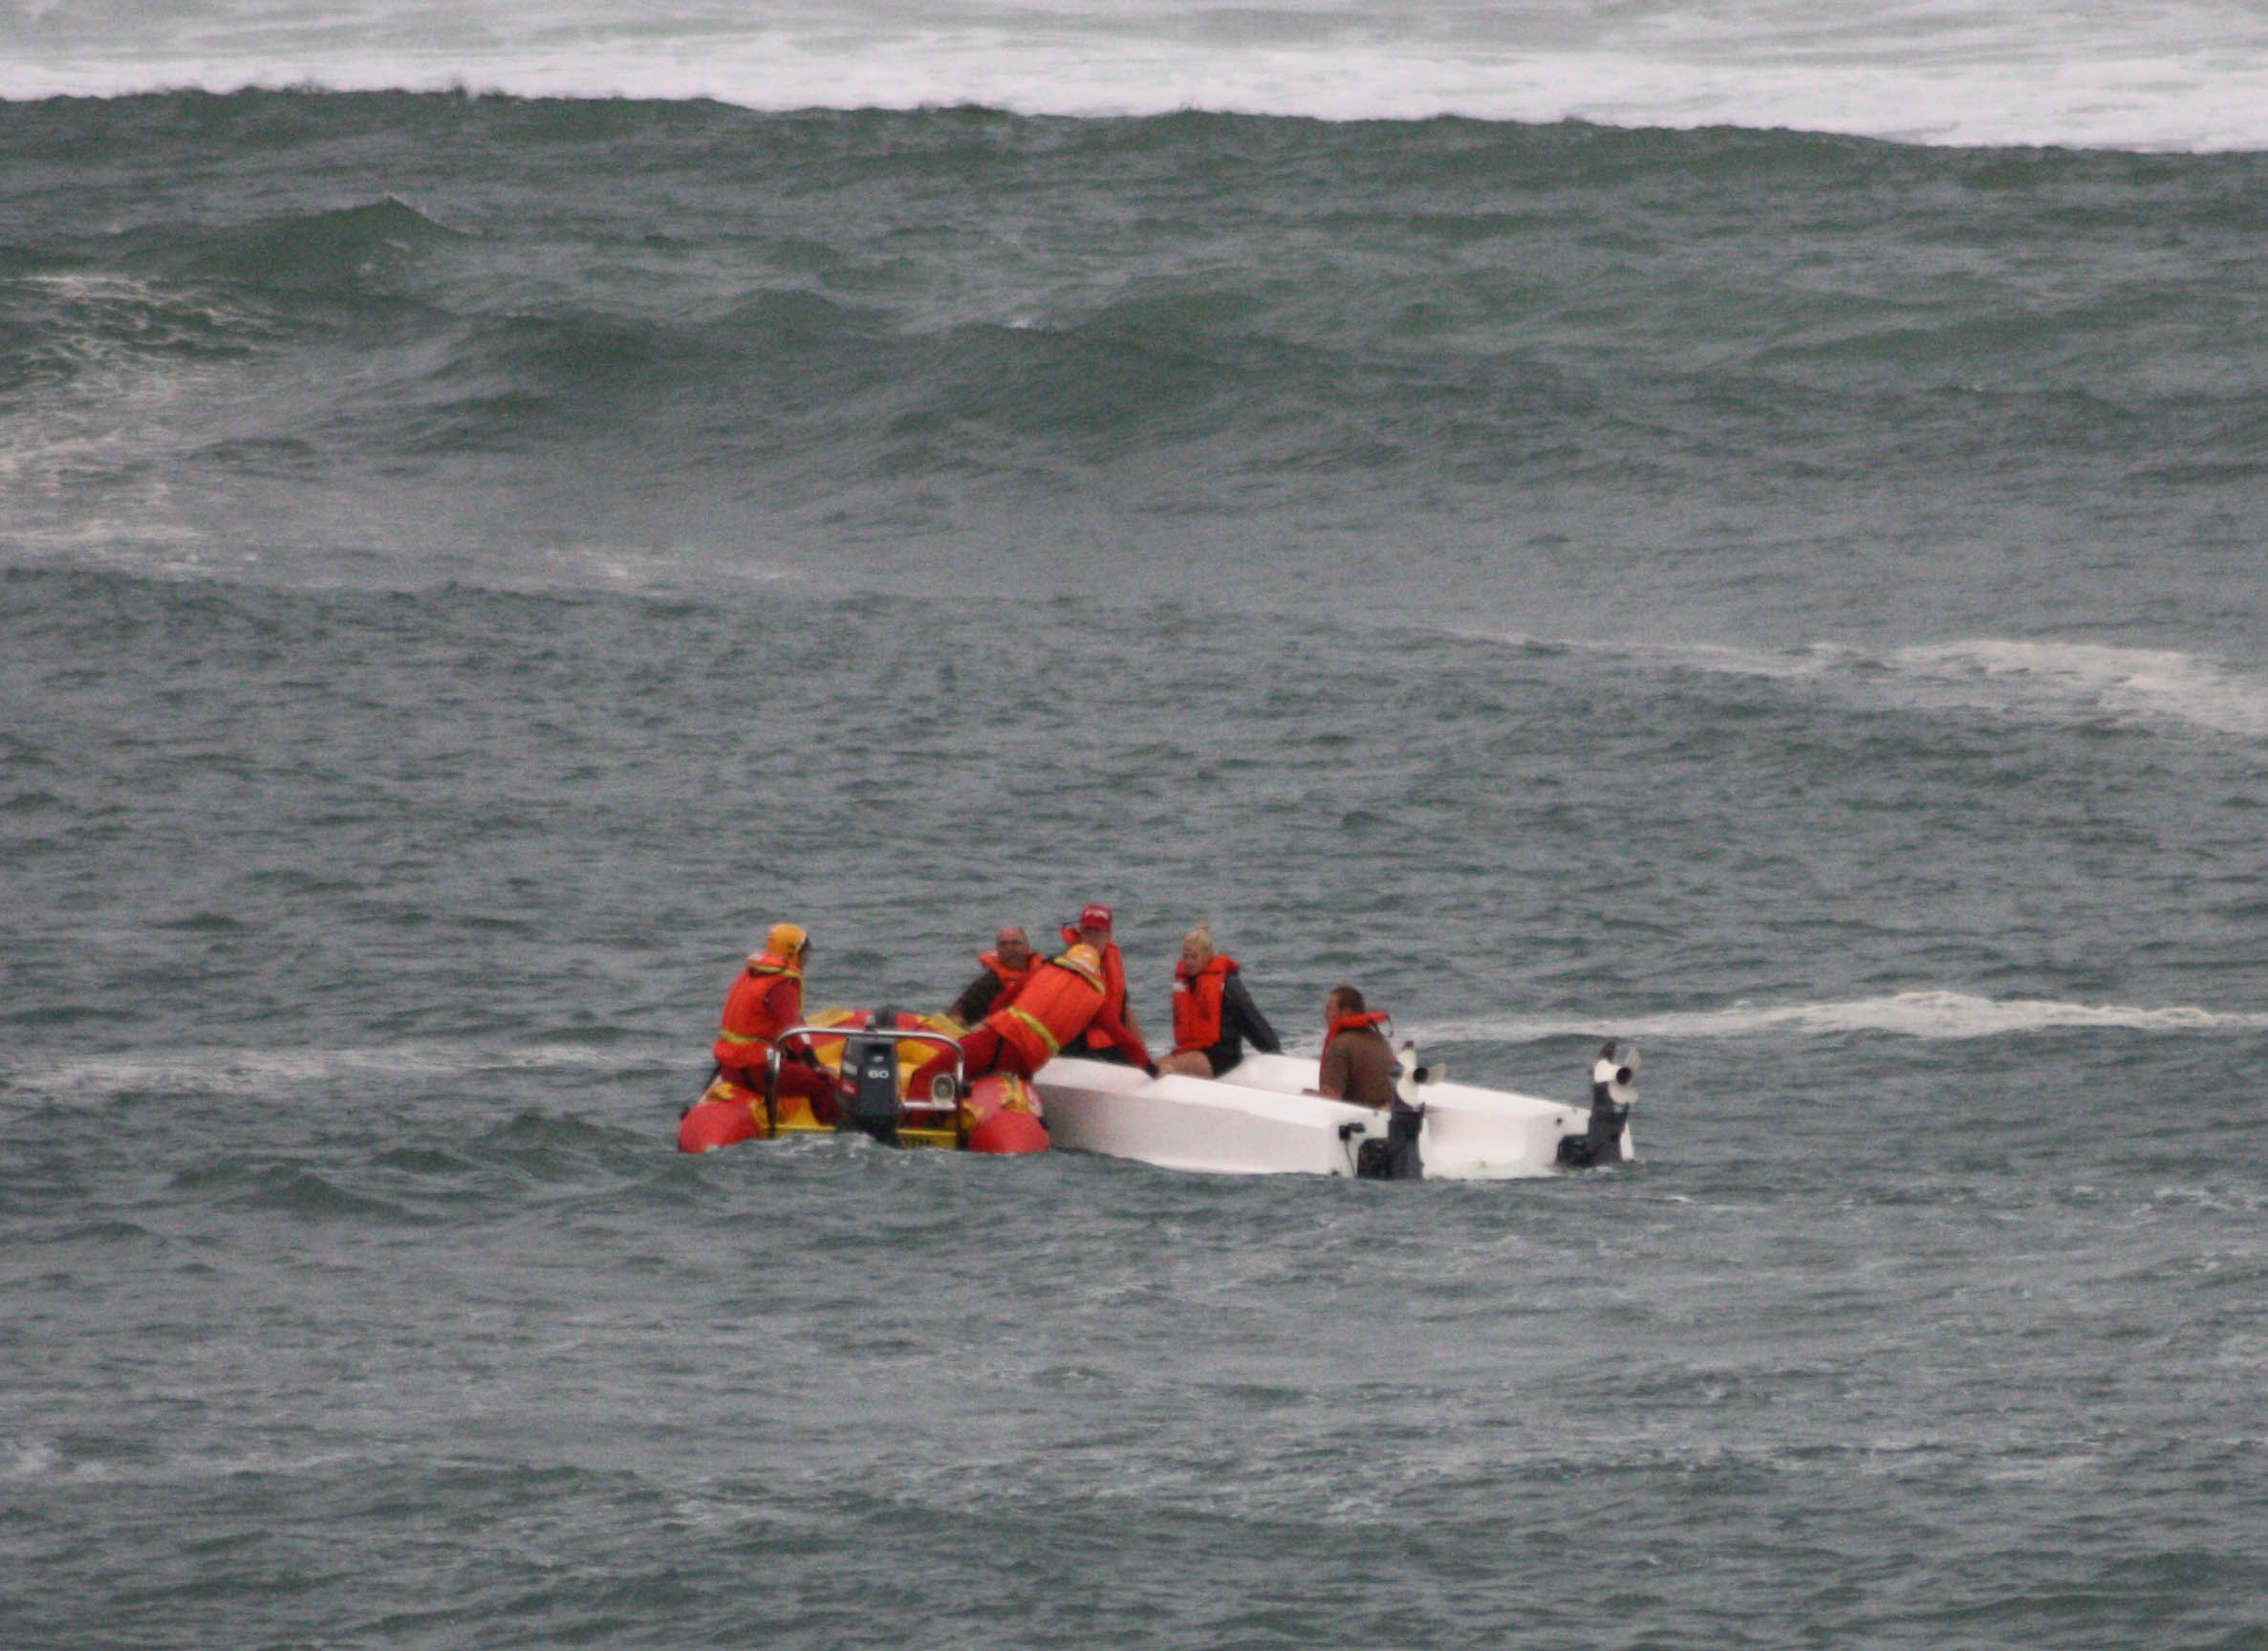 A capsized boat is helped by NSRI crew at Witsand. Picture by Peter Adriaens.